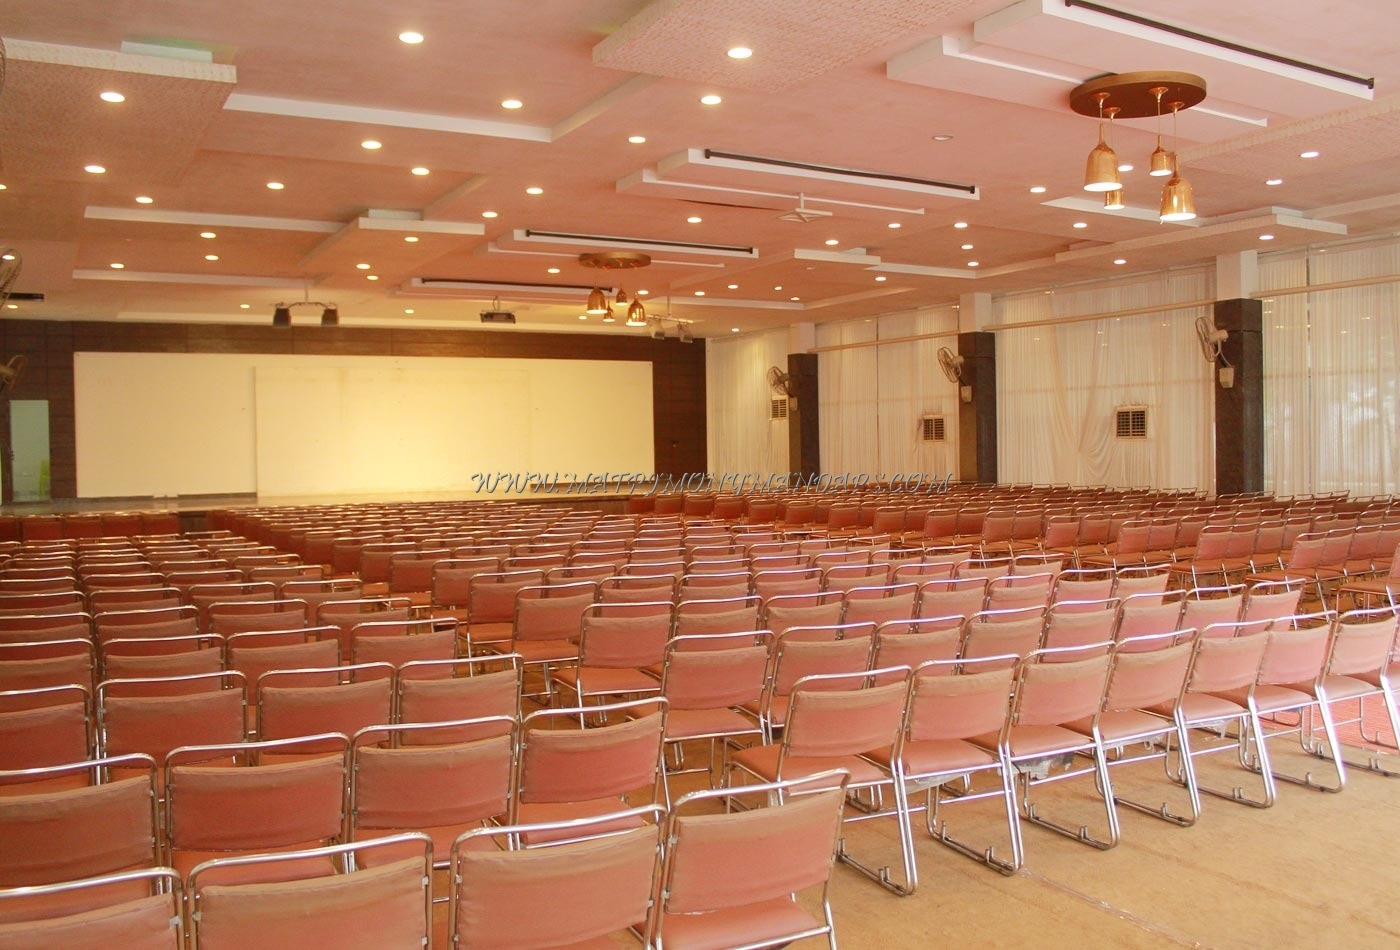 Find the availability of the Vorla-Laxmi Narasamma Convention (A/C) in ECIL, Hyderabad and avail special offers